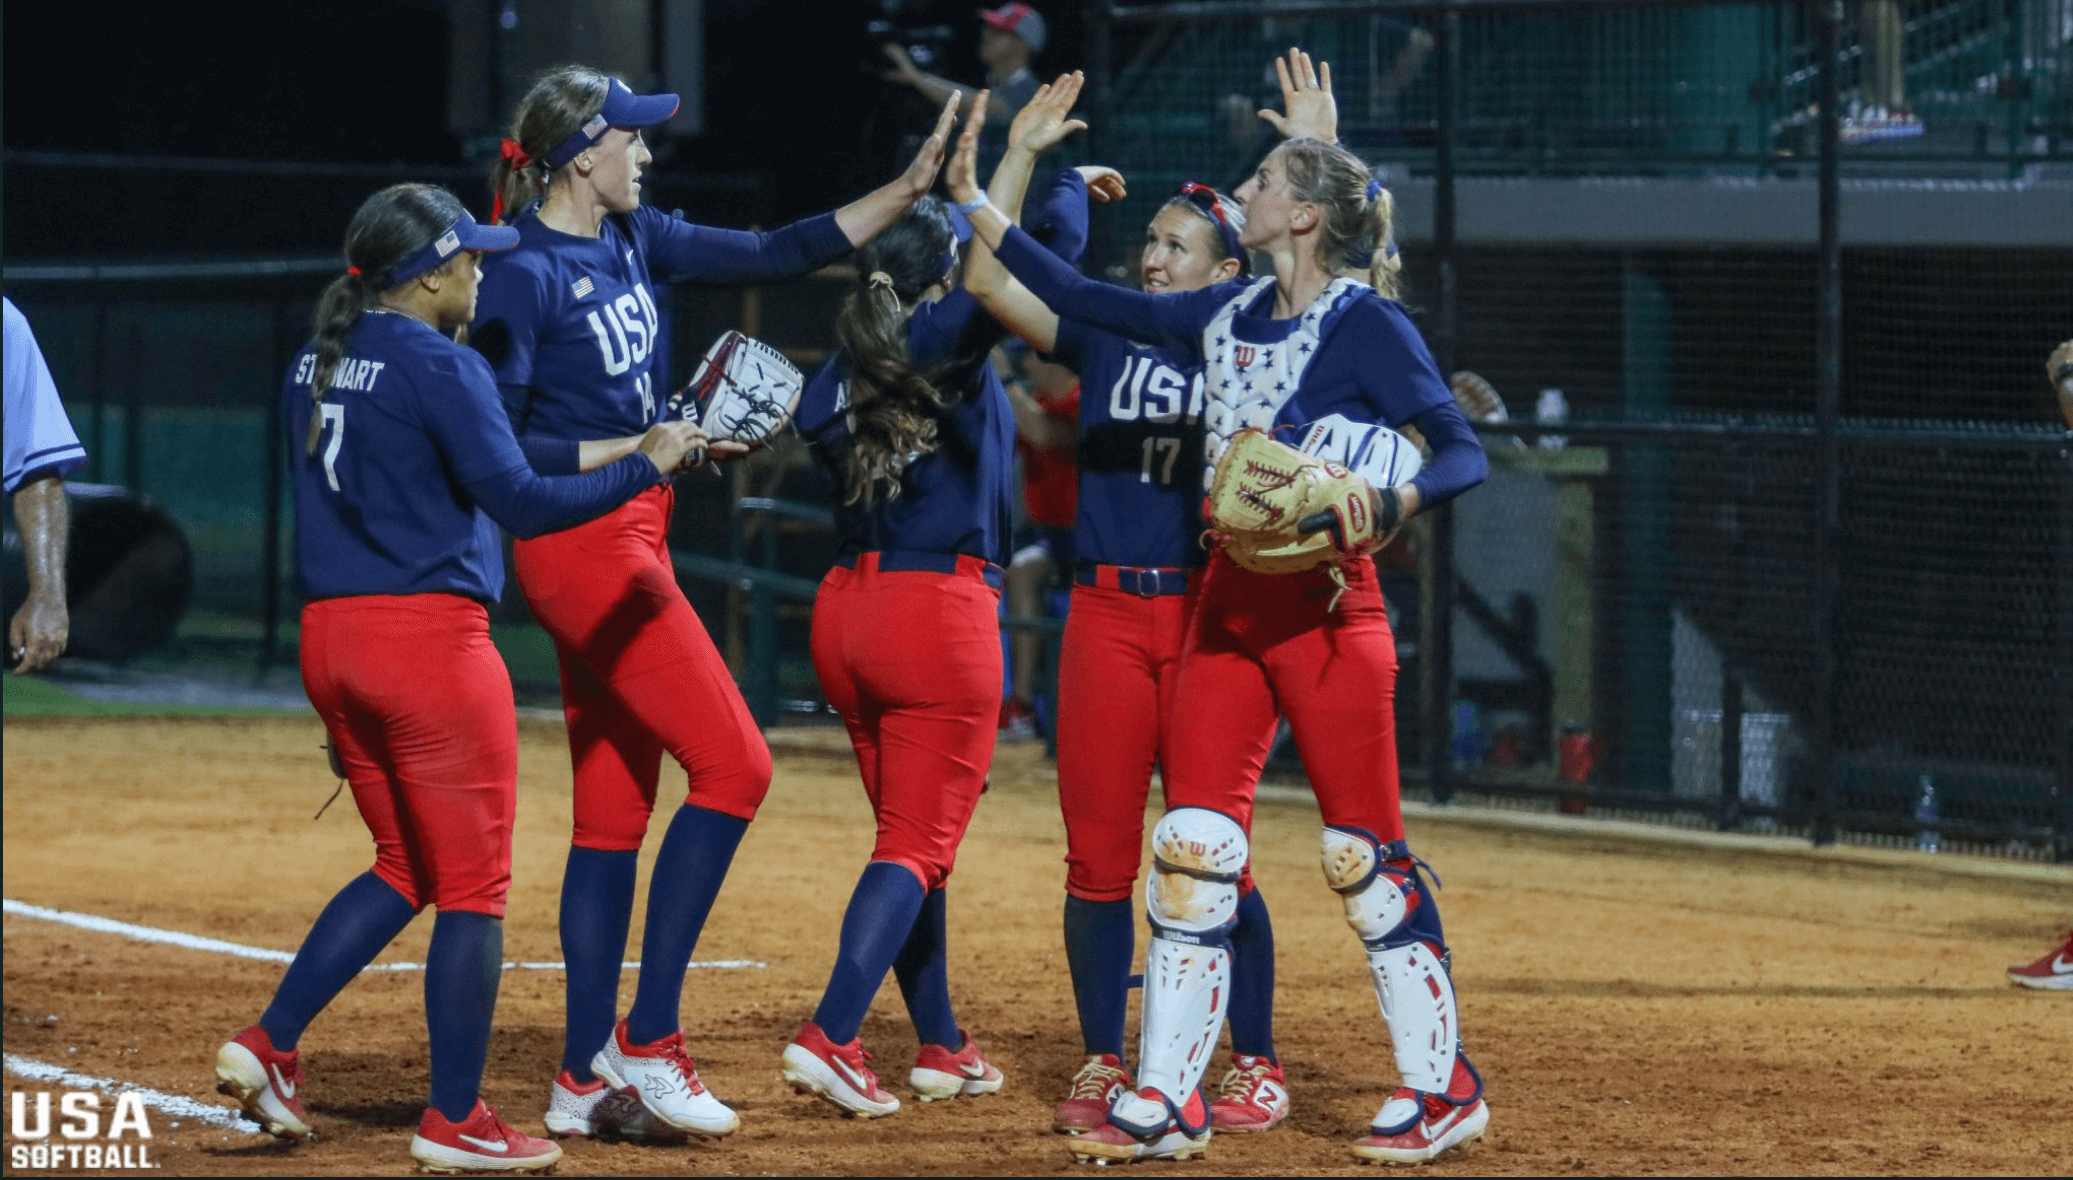 USA Softball: Schedule Set for 2020 Olympic Team Selection Trials in Oklahoma City